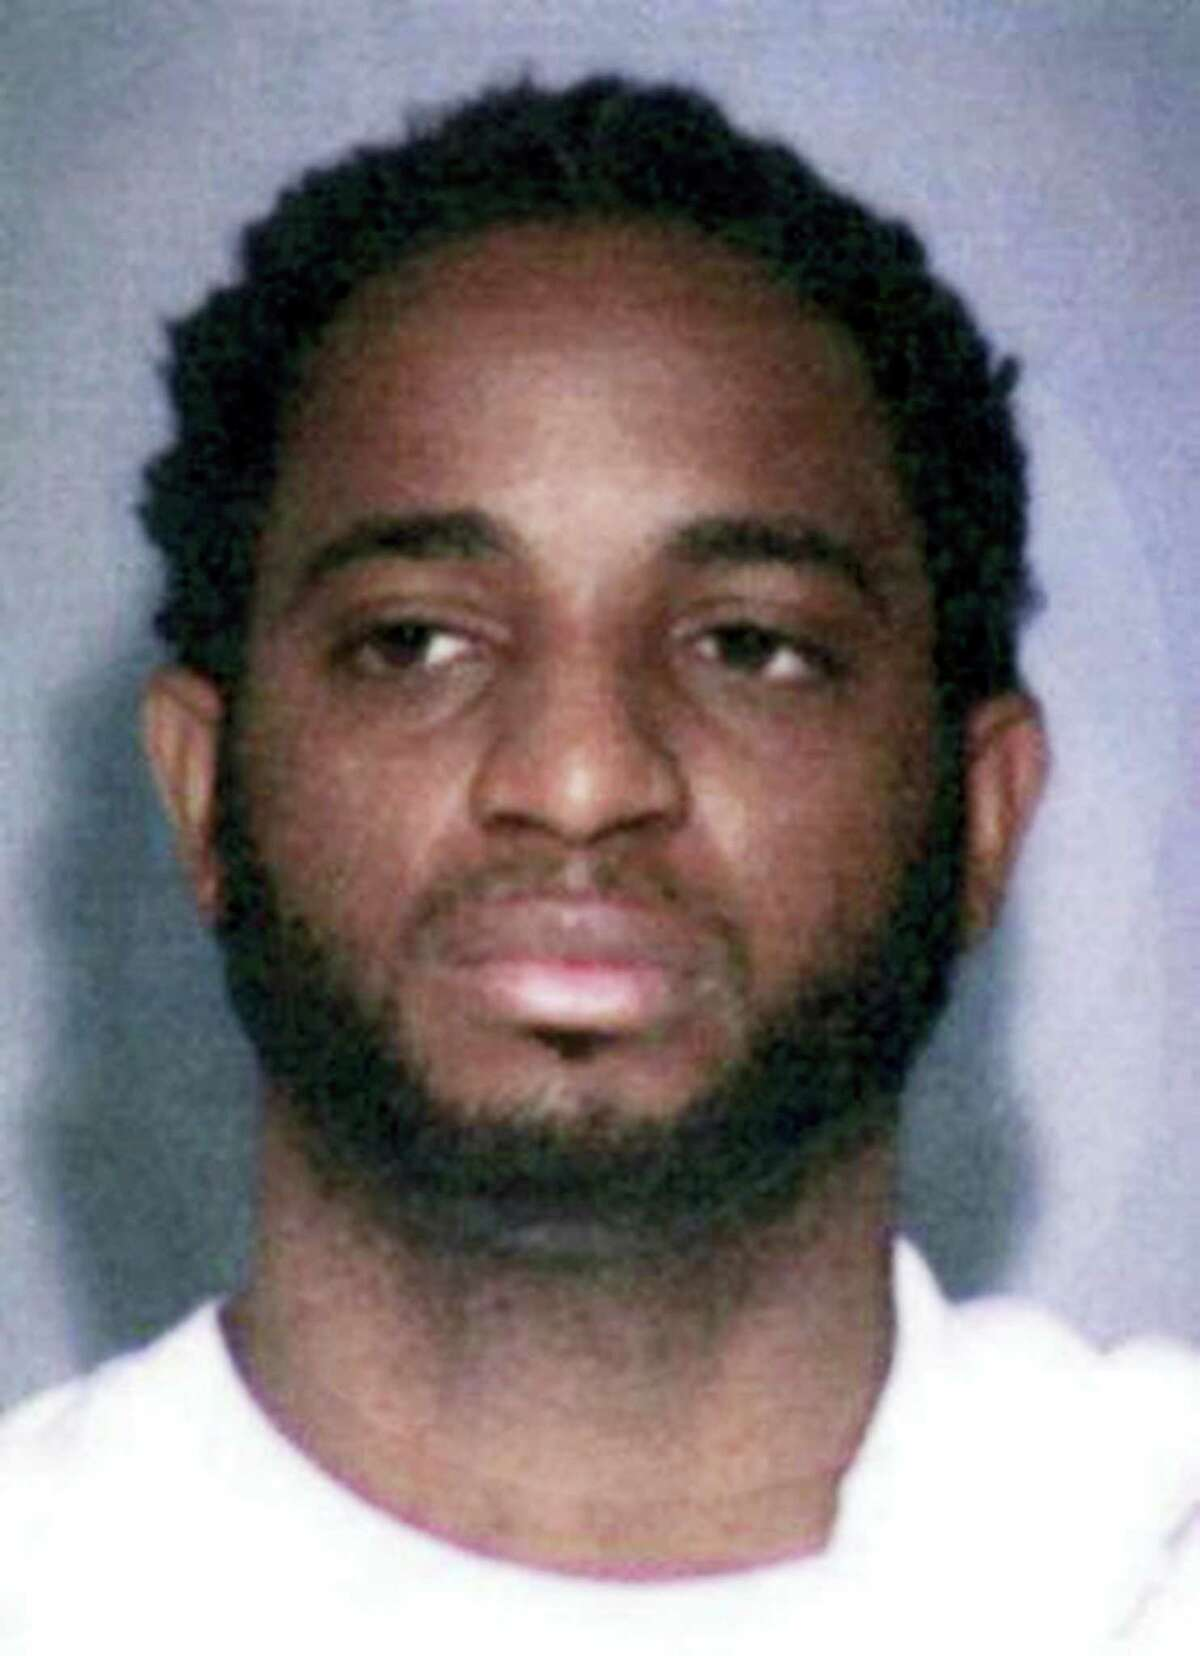 """This undated photo provided by the FBI shows fugitive Marlon Jones who is wanted for multiple counts of murder in Los Angeles. The FBI has added Jones, a Jamaican fugitive to its most-wanted list as a suspect in the slaying of four people at a Los Angeles birthday party in October. The FBI announced a reward on Thursday, Dec. 1, 2016 of up to $100,000 for information leading to the arrest of Jones who should be """"considered armed and extremely dangerous."""""""